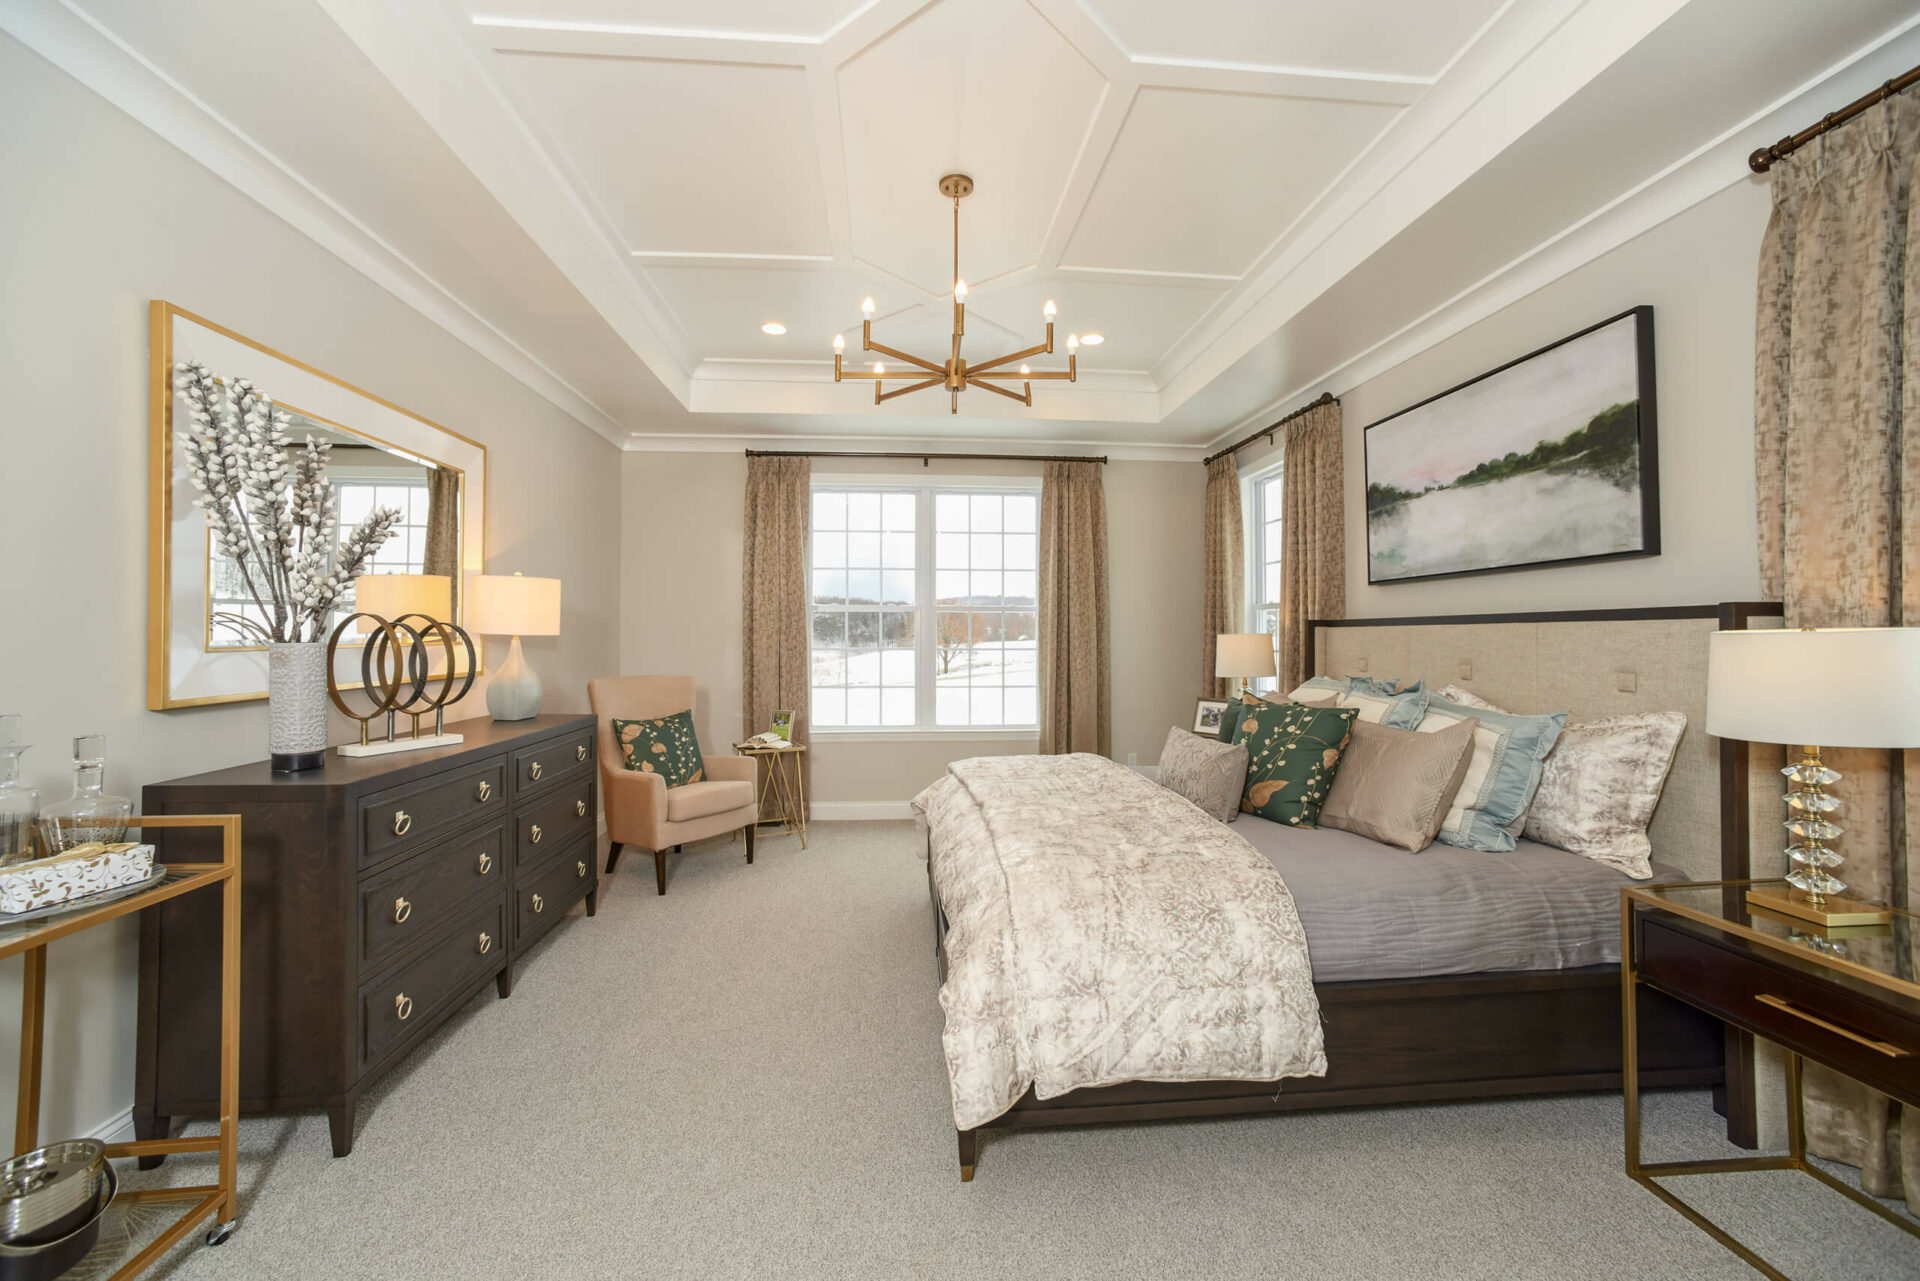 The tailored look is smartly and seamlessly woven into every room and works nicely in the Master Bedroom in the Hancock Model at Traditions of America